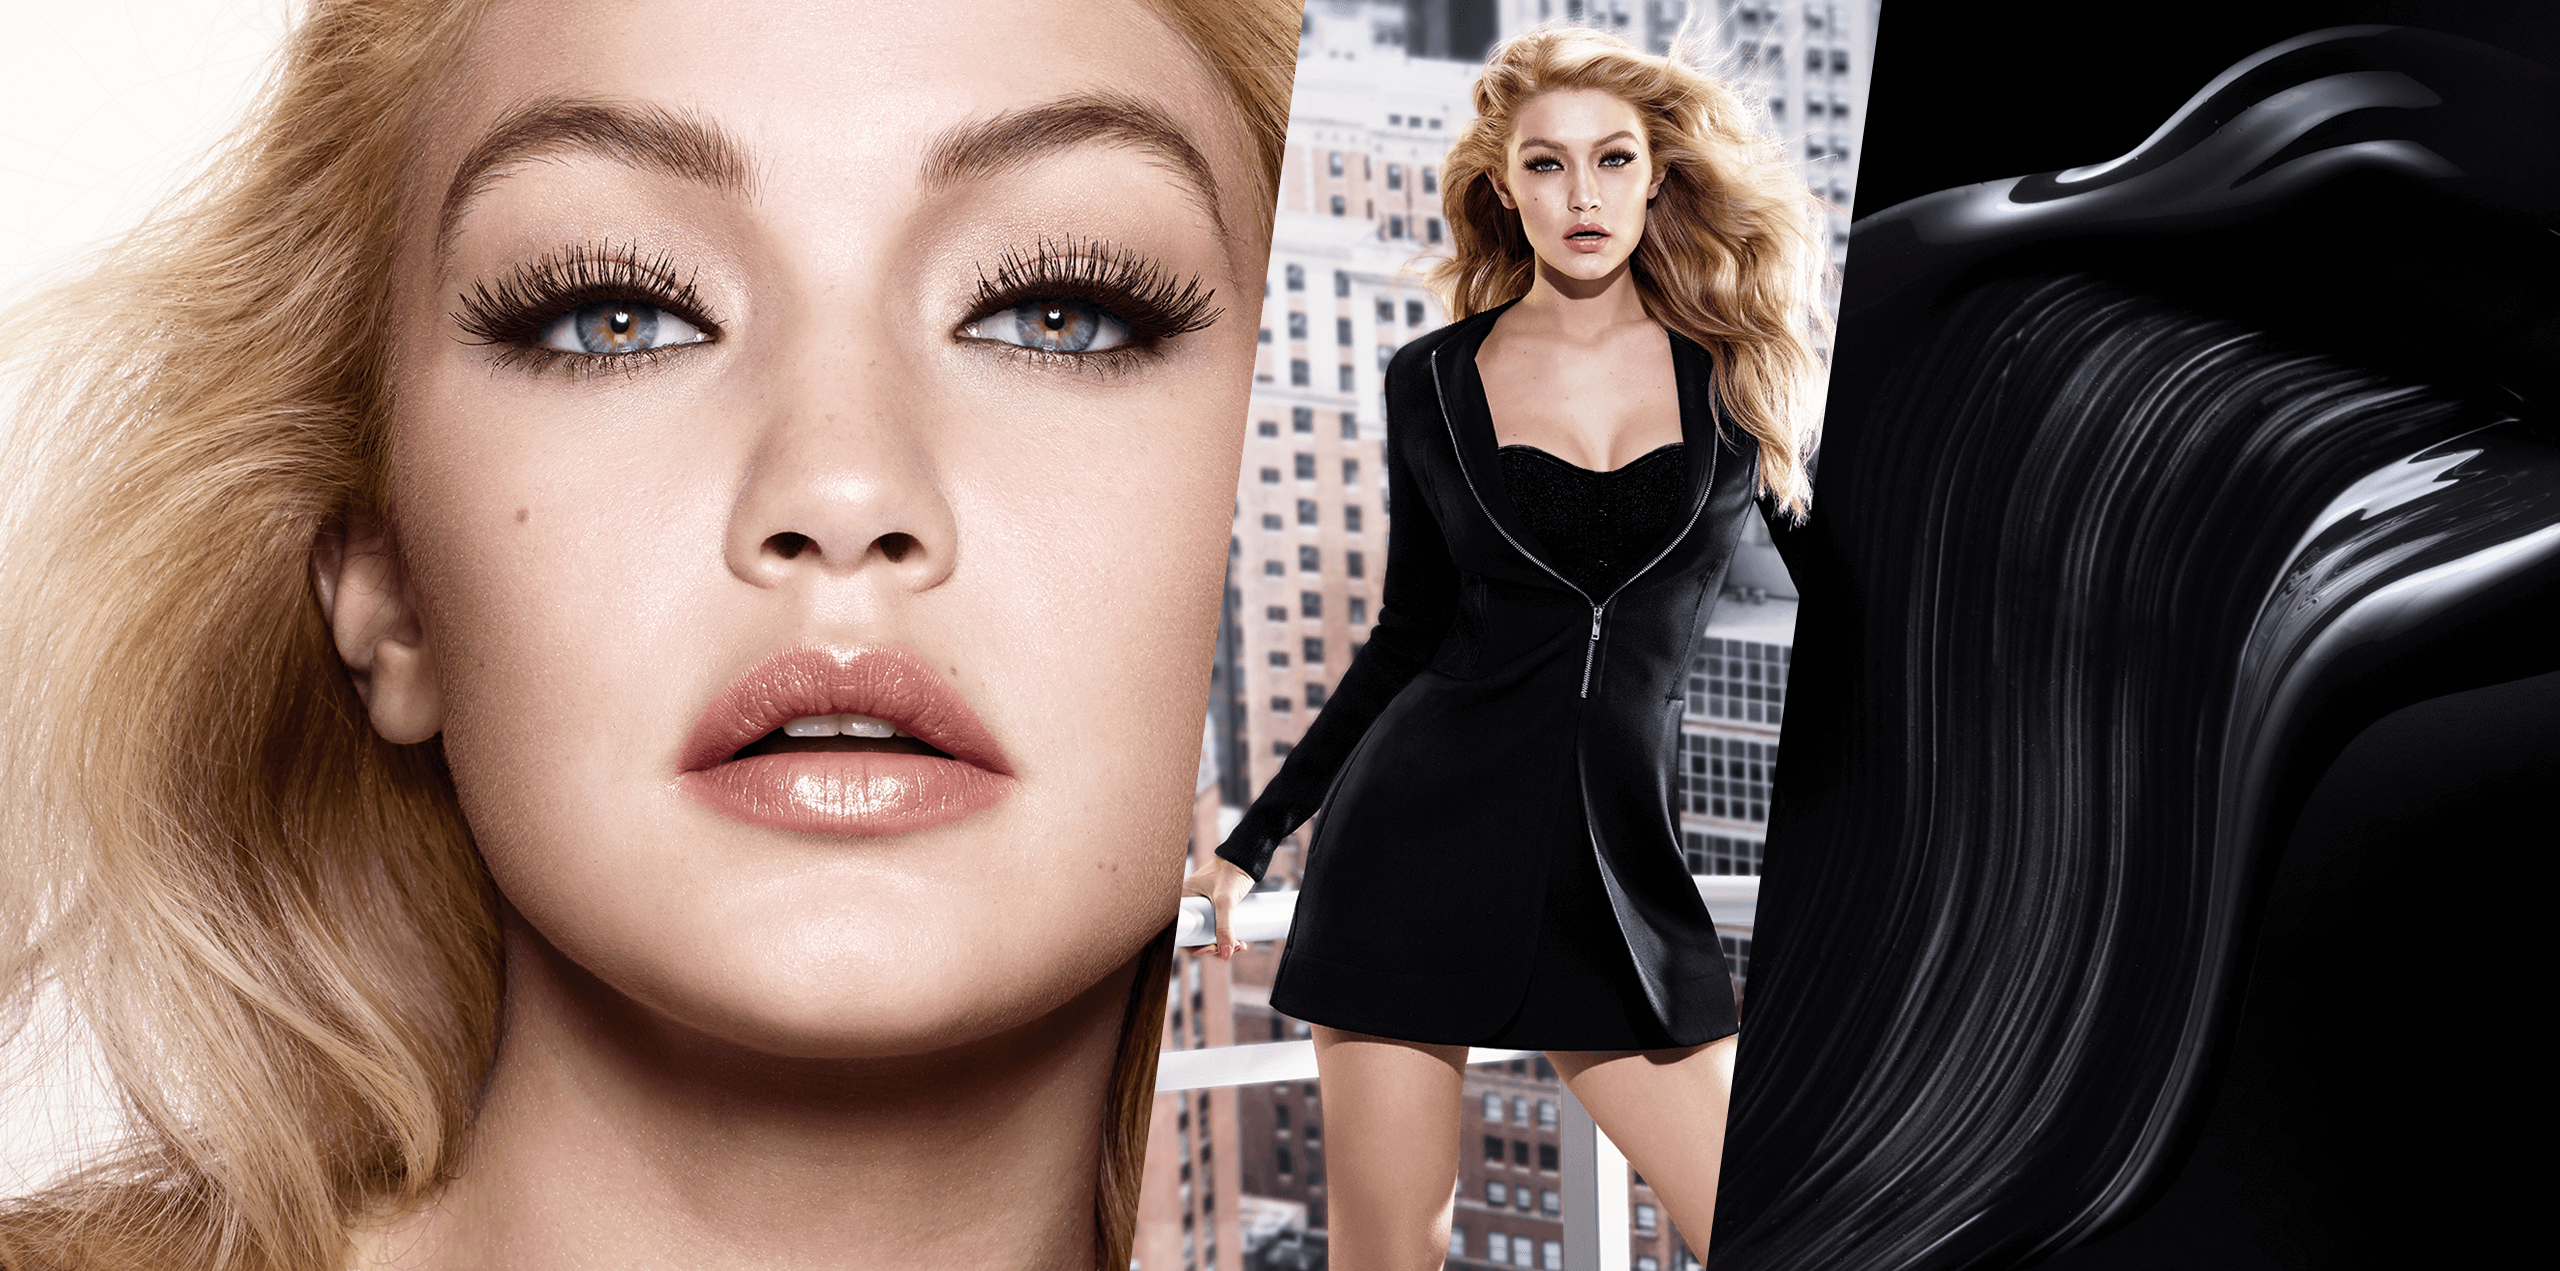 Maybelline-HeroImage-1